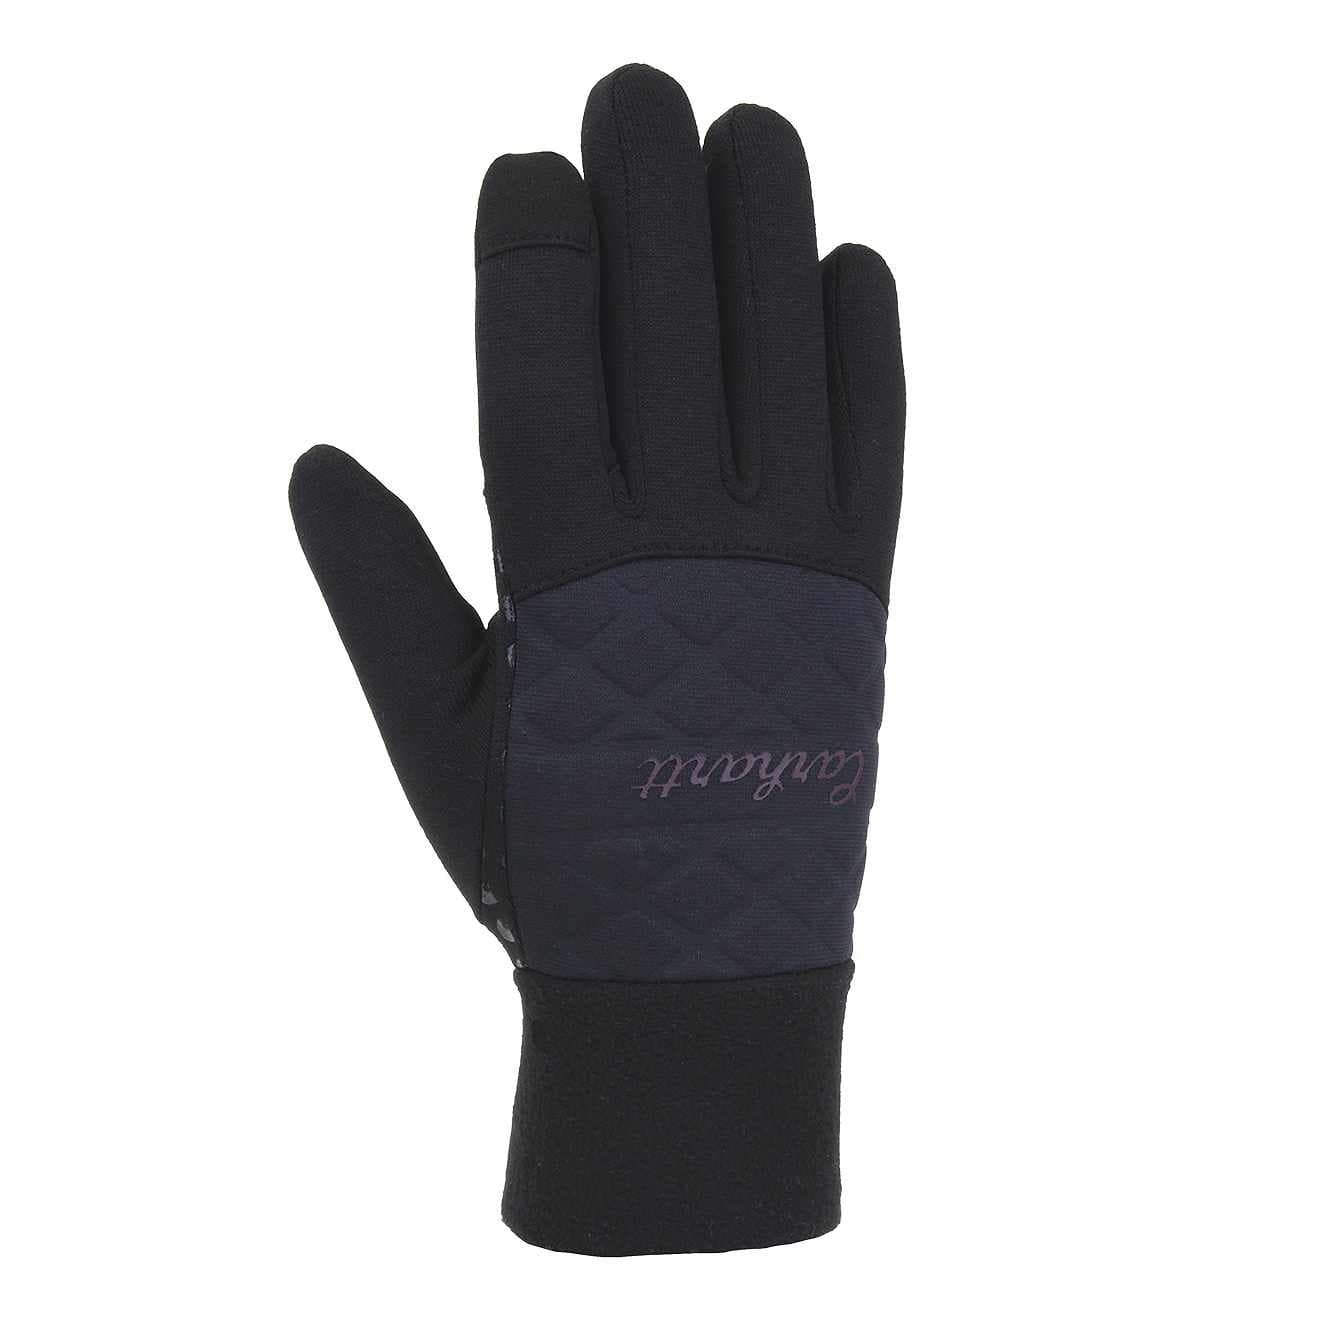 Picture of The Iris Glove in Black